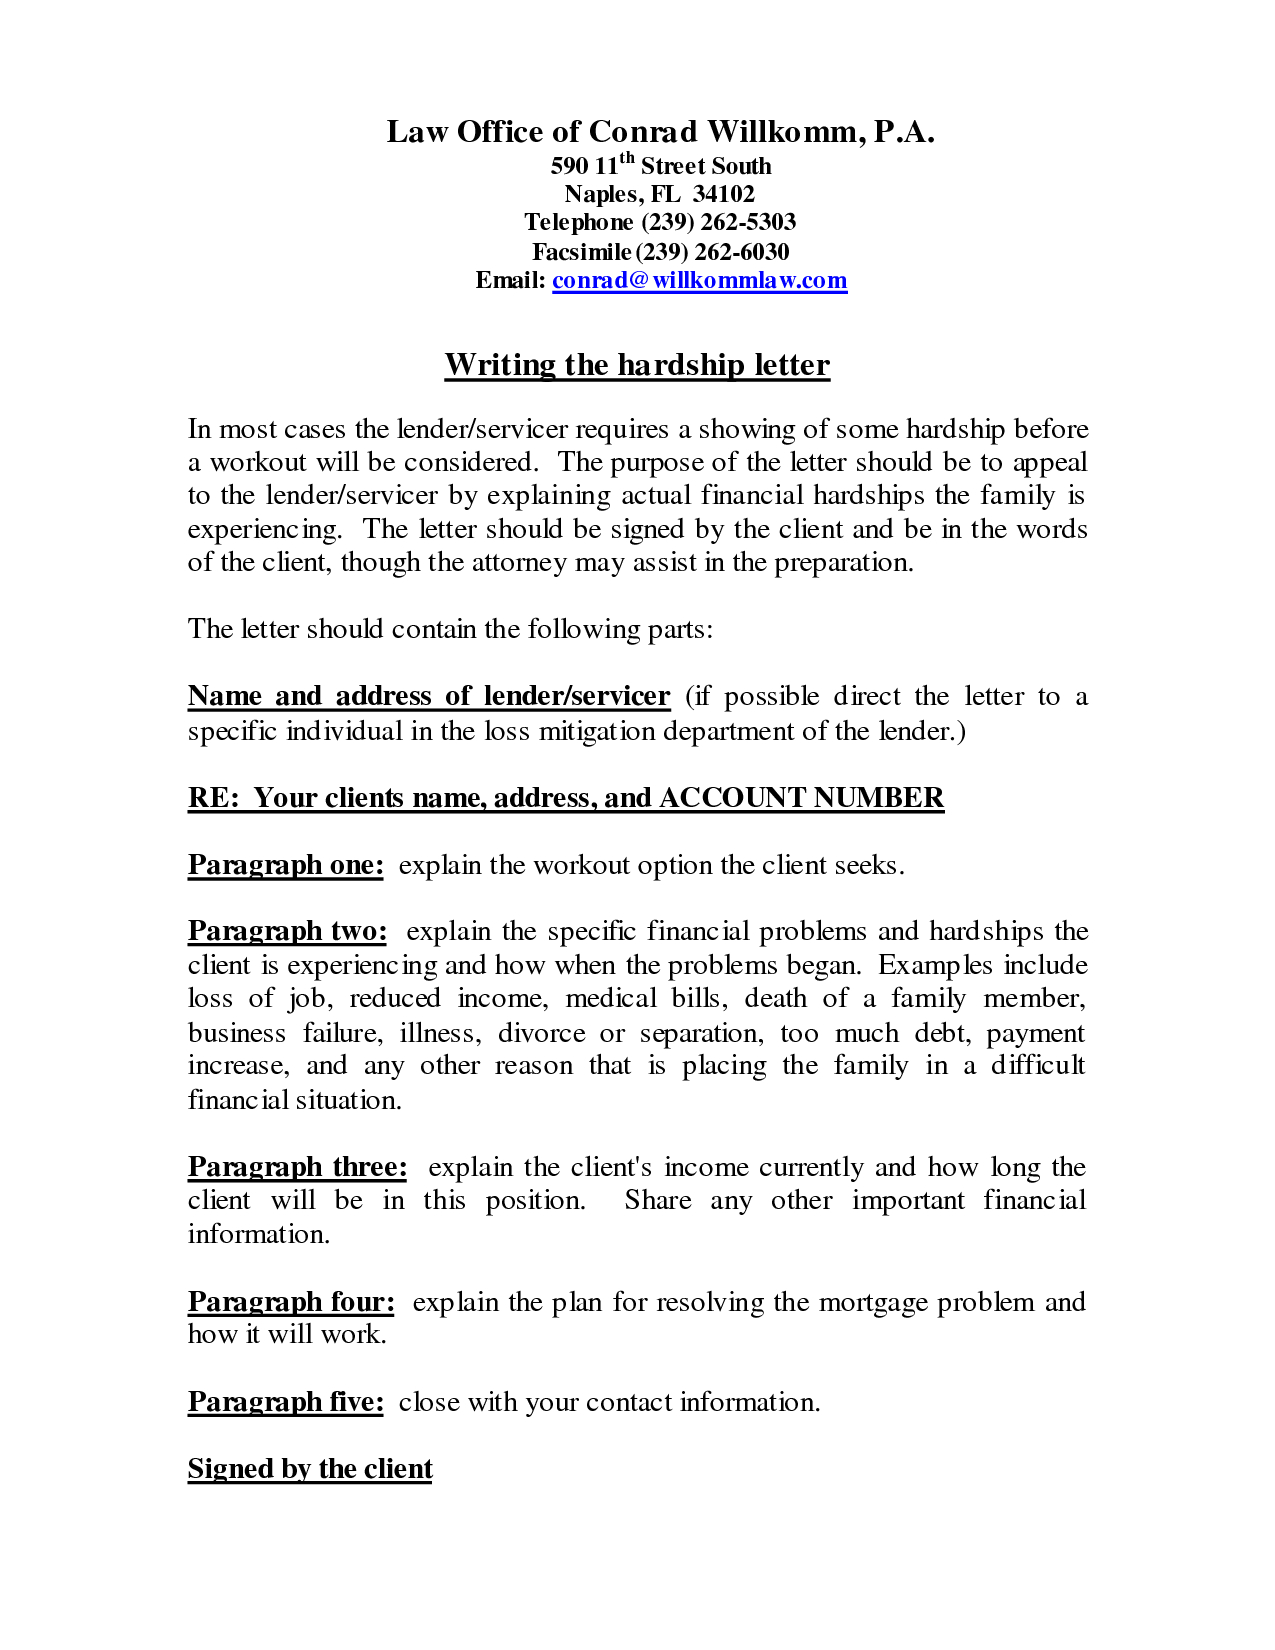 401k hardship letter template how to write a hardship letter for school gallery letter format